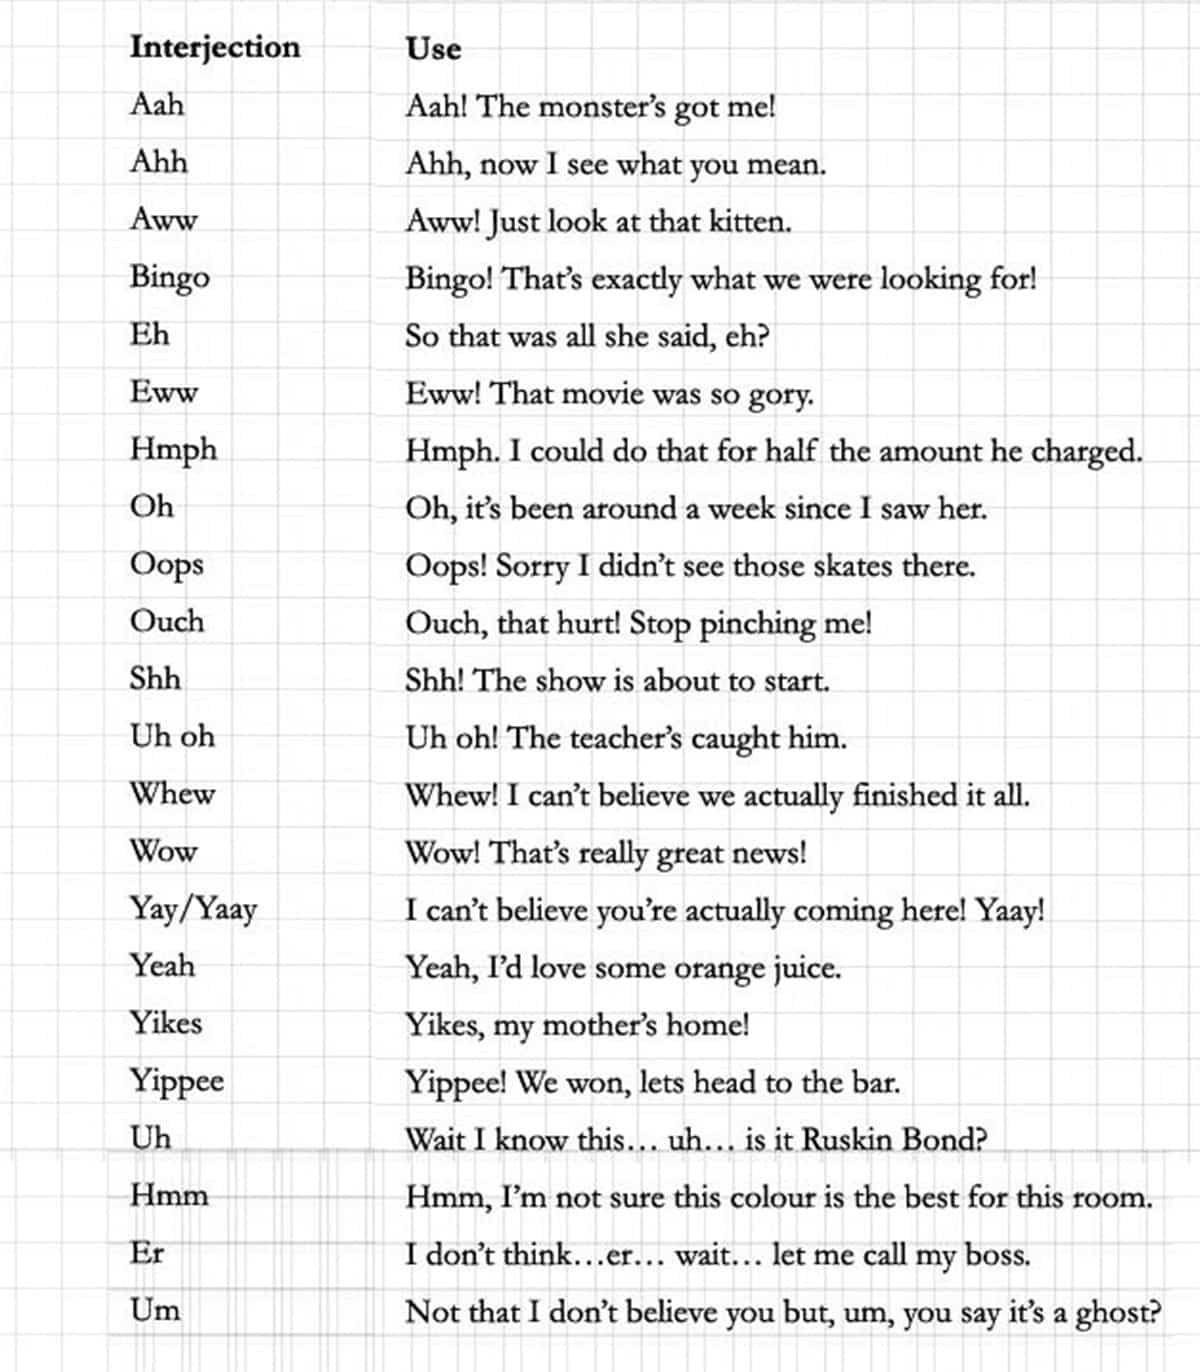 list of Interjections